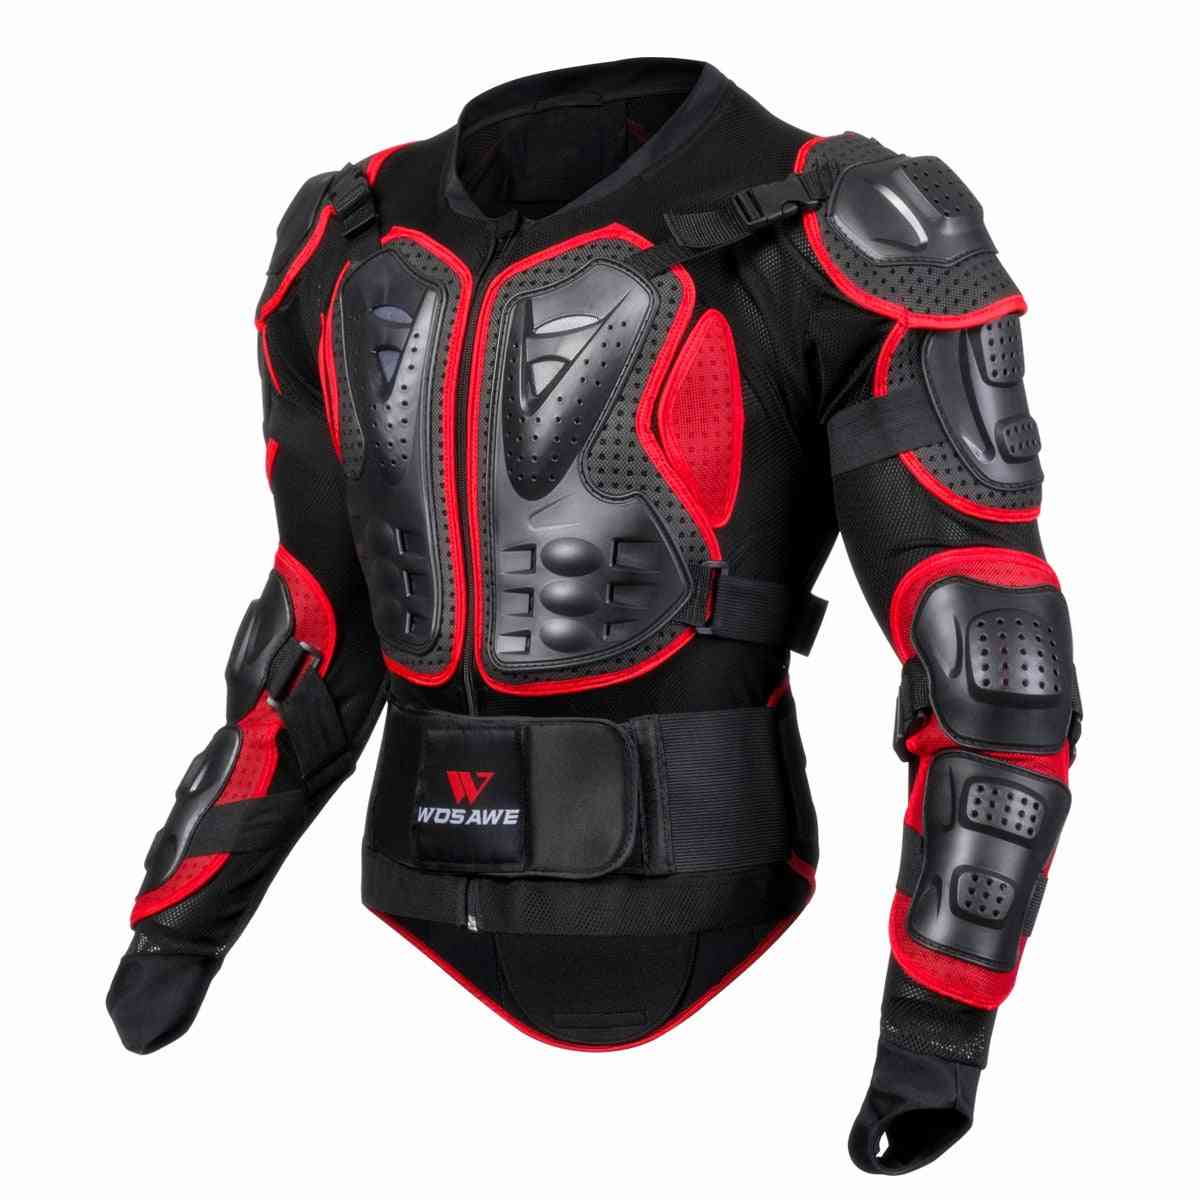 Men Full Body Armor Jacket, Motocross Racing Protective Gear Back Chest Shoullder Elbow Protection